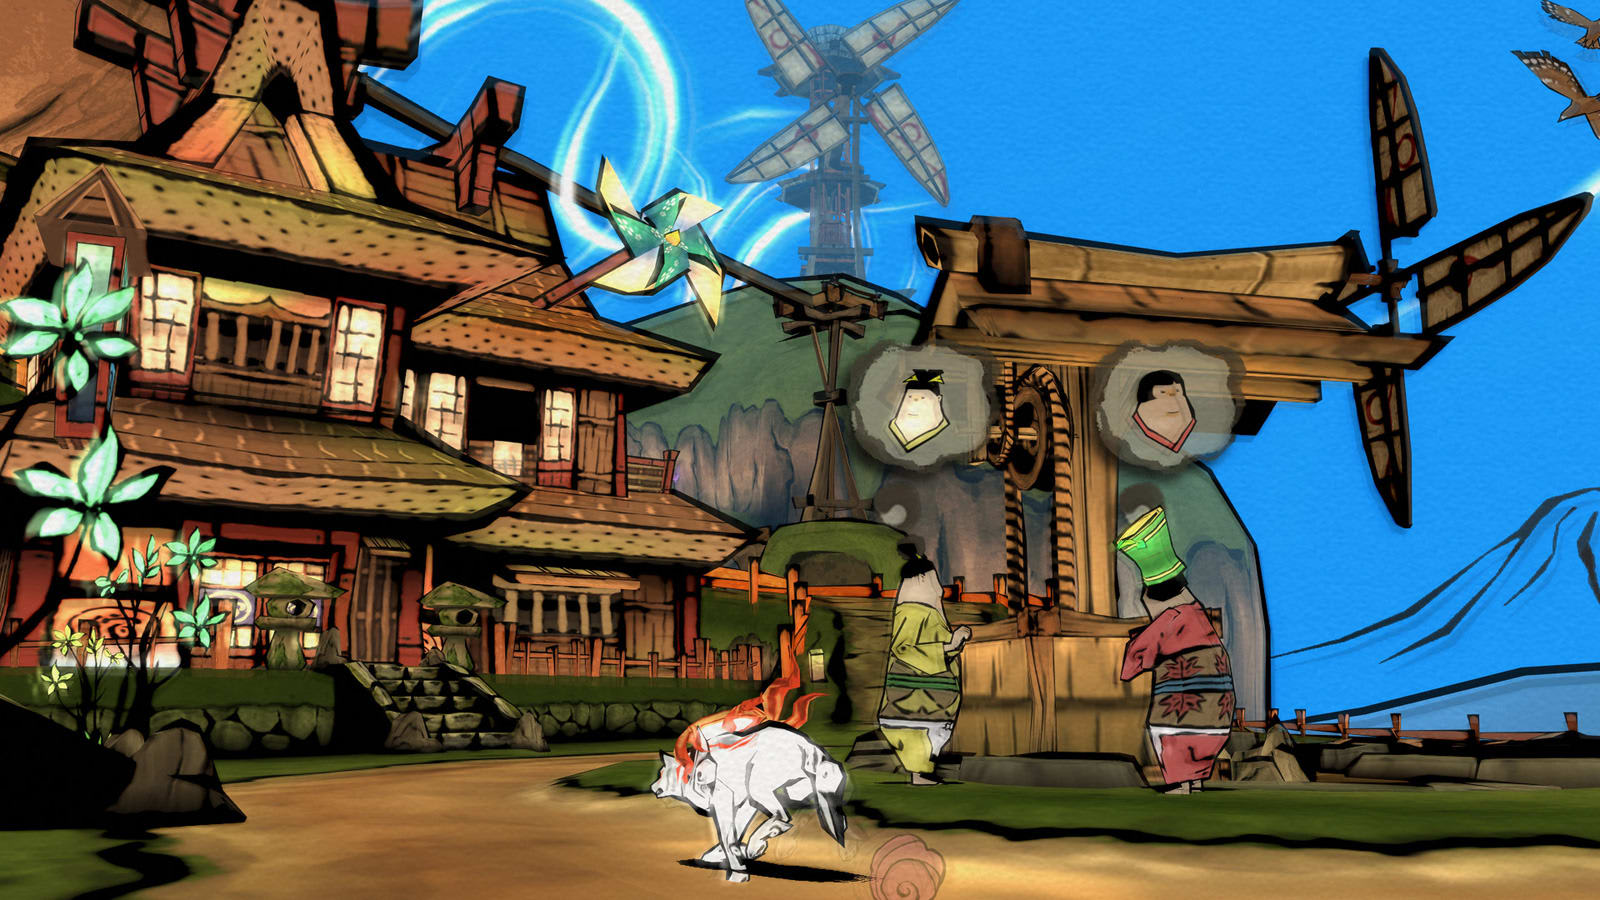 'Okami' veterans want to make a sequel